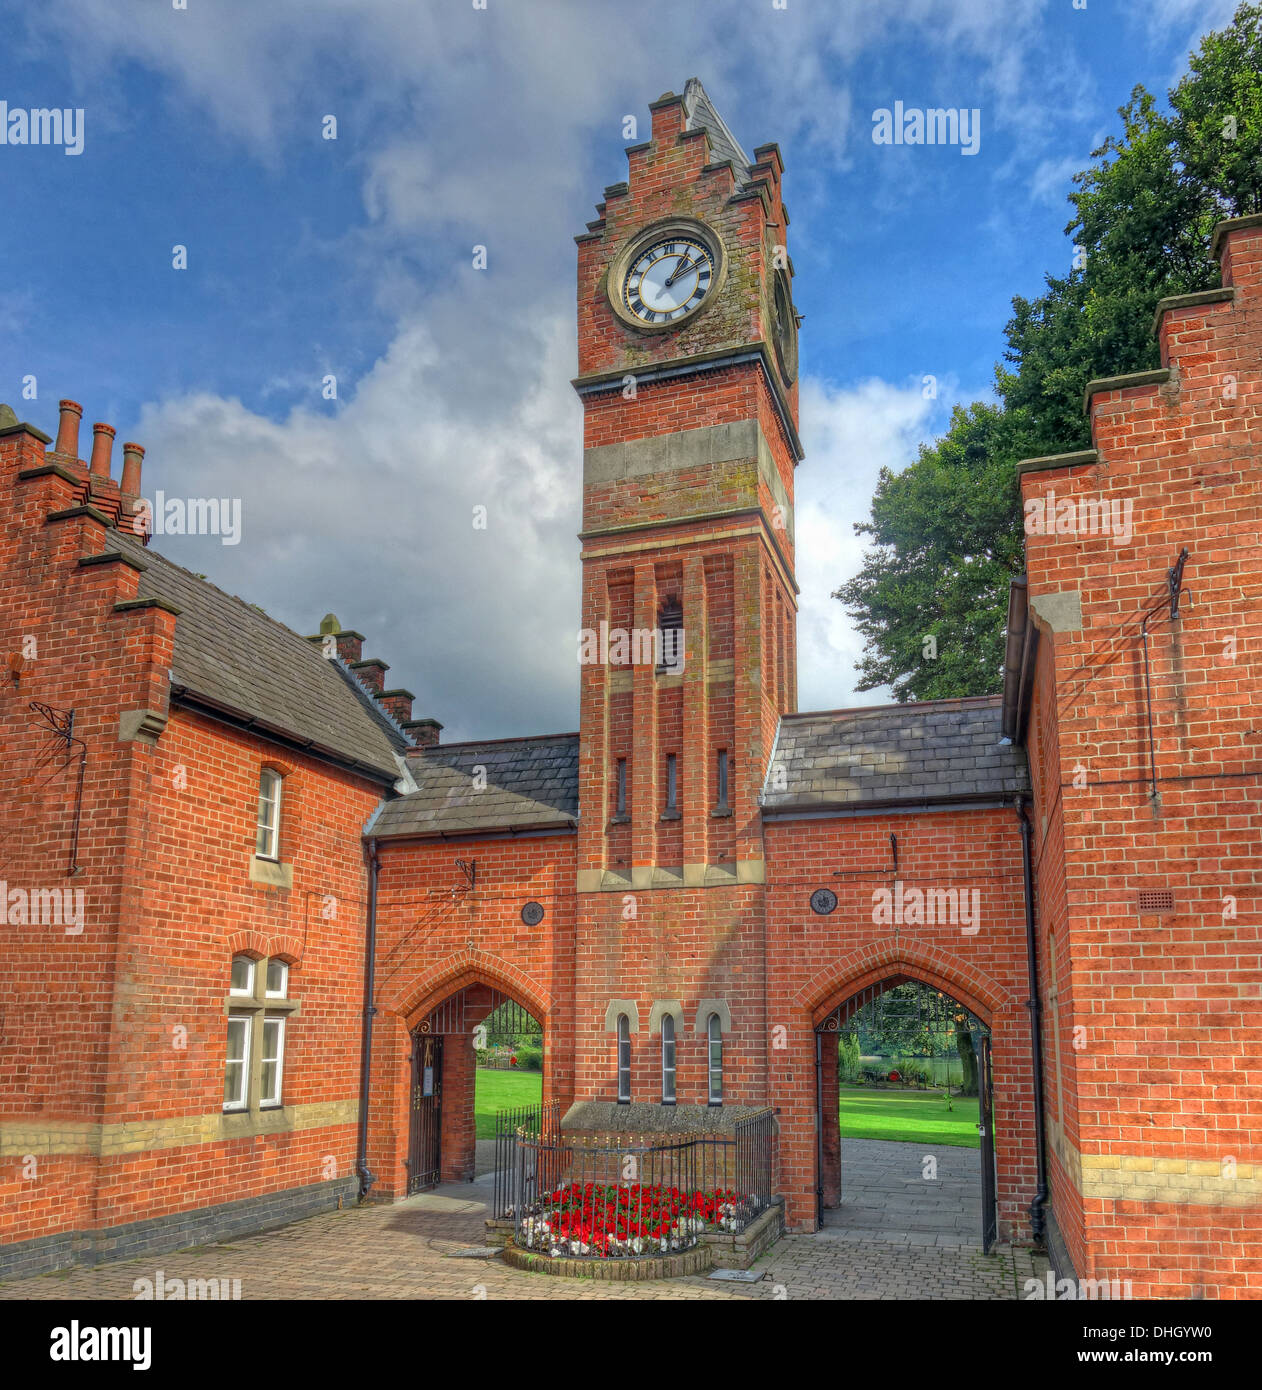 West,Midlands,England,UK,famous,clock,tower,clocks,timepiece,time,piece,gate,entrance,port,portal,red,brick,flowers,summer,best,loved,parks,saddlers,saddler,things,to,see,in,tourist,tourism,attraction,lodge,fine,old,victorian,building,gotonysmith,buildings,flanking,bays,contain,gates,below,a,depressed,gothic,arch,and,slate,saddle-back,roof,linking,to,two,storey,bays,below,a,stepped,gable,with,stone,dressed,tripartite,windows.,Chimney,stacks,are,at,the,extremities,with,that,on,the,right,showing,its,original,crenellated,pot.,Low,single,storey,end,bays,stand,below,slate,saddlebacks,with stepped gable ends and double lancets stone dressed,Black,Country,Buy Pictures of,Buy Images Of,Black Country,Walsall Black Country